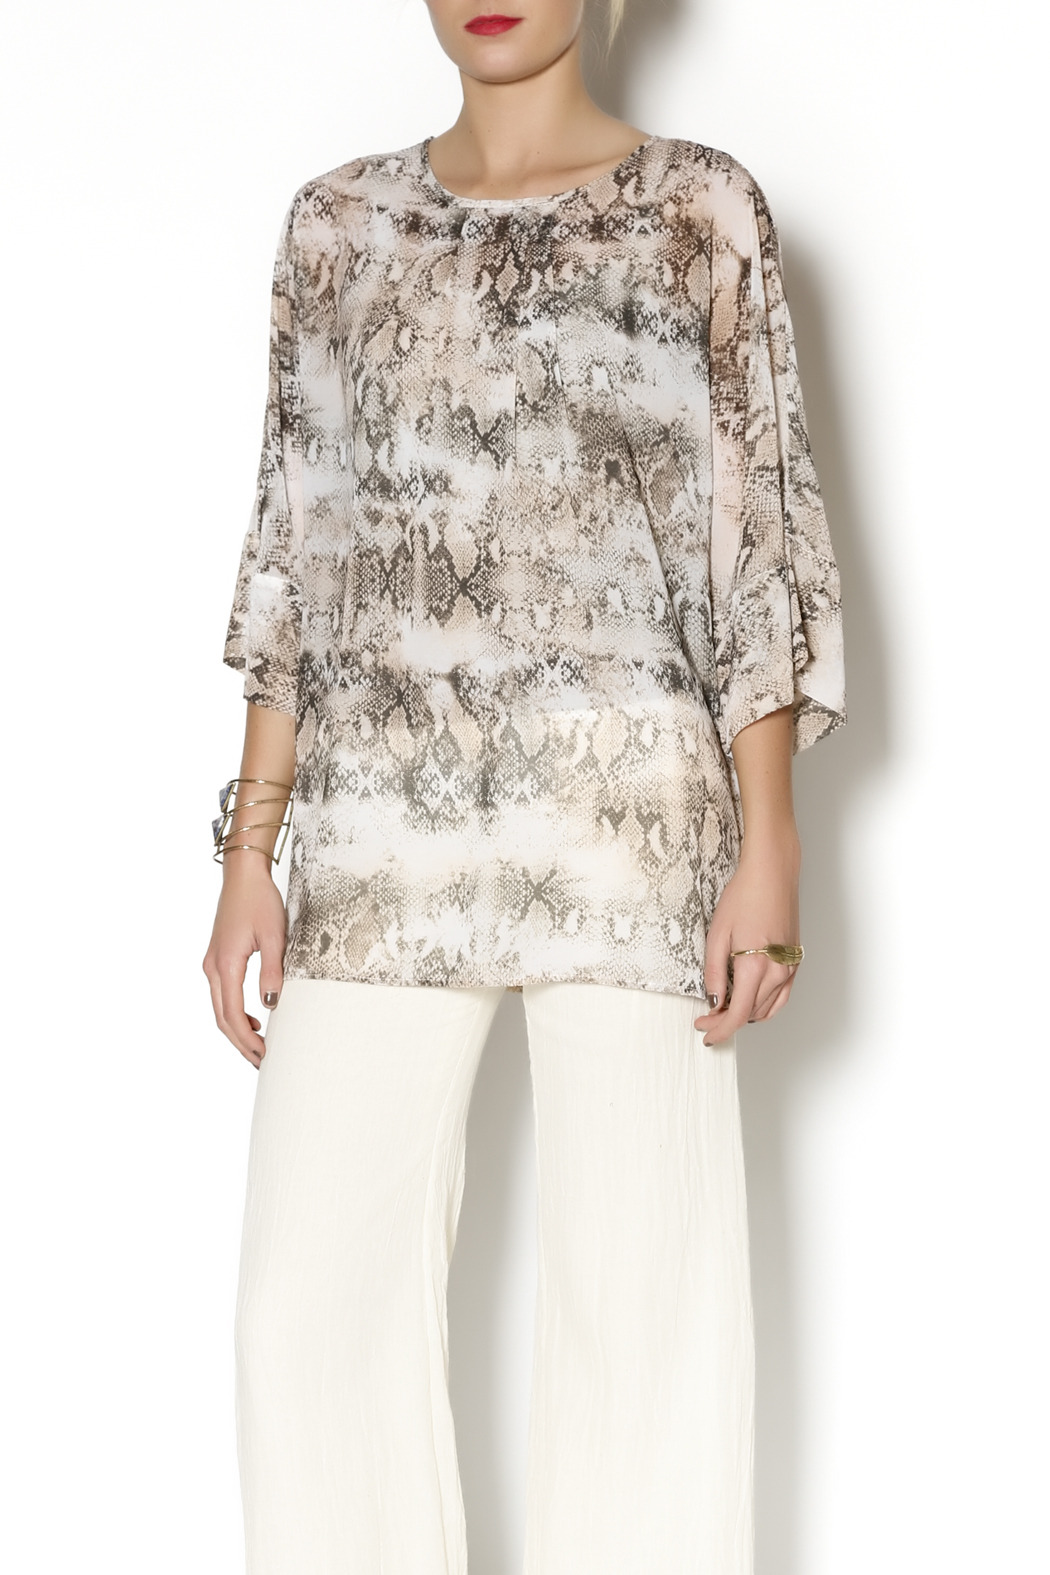 Julian Chang Snake Print Tunic - Main Image